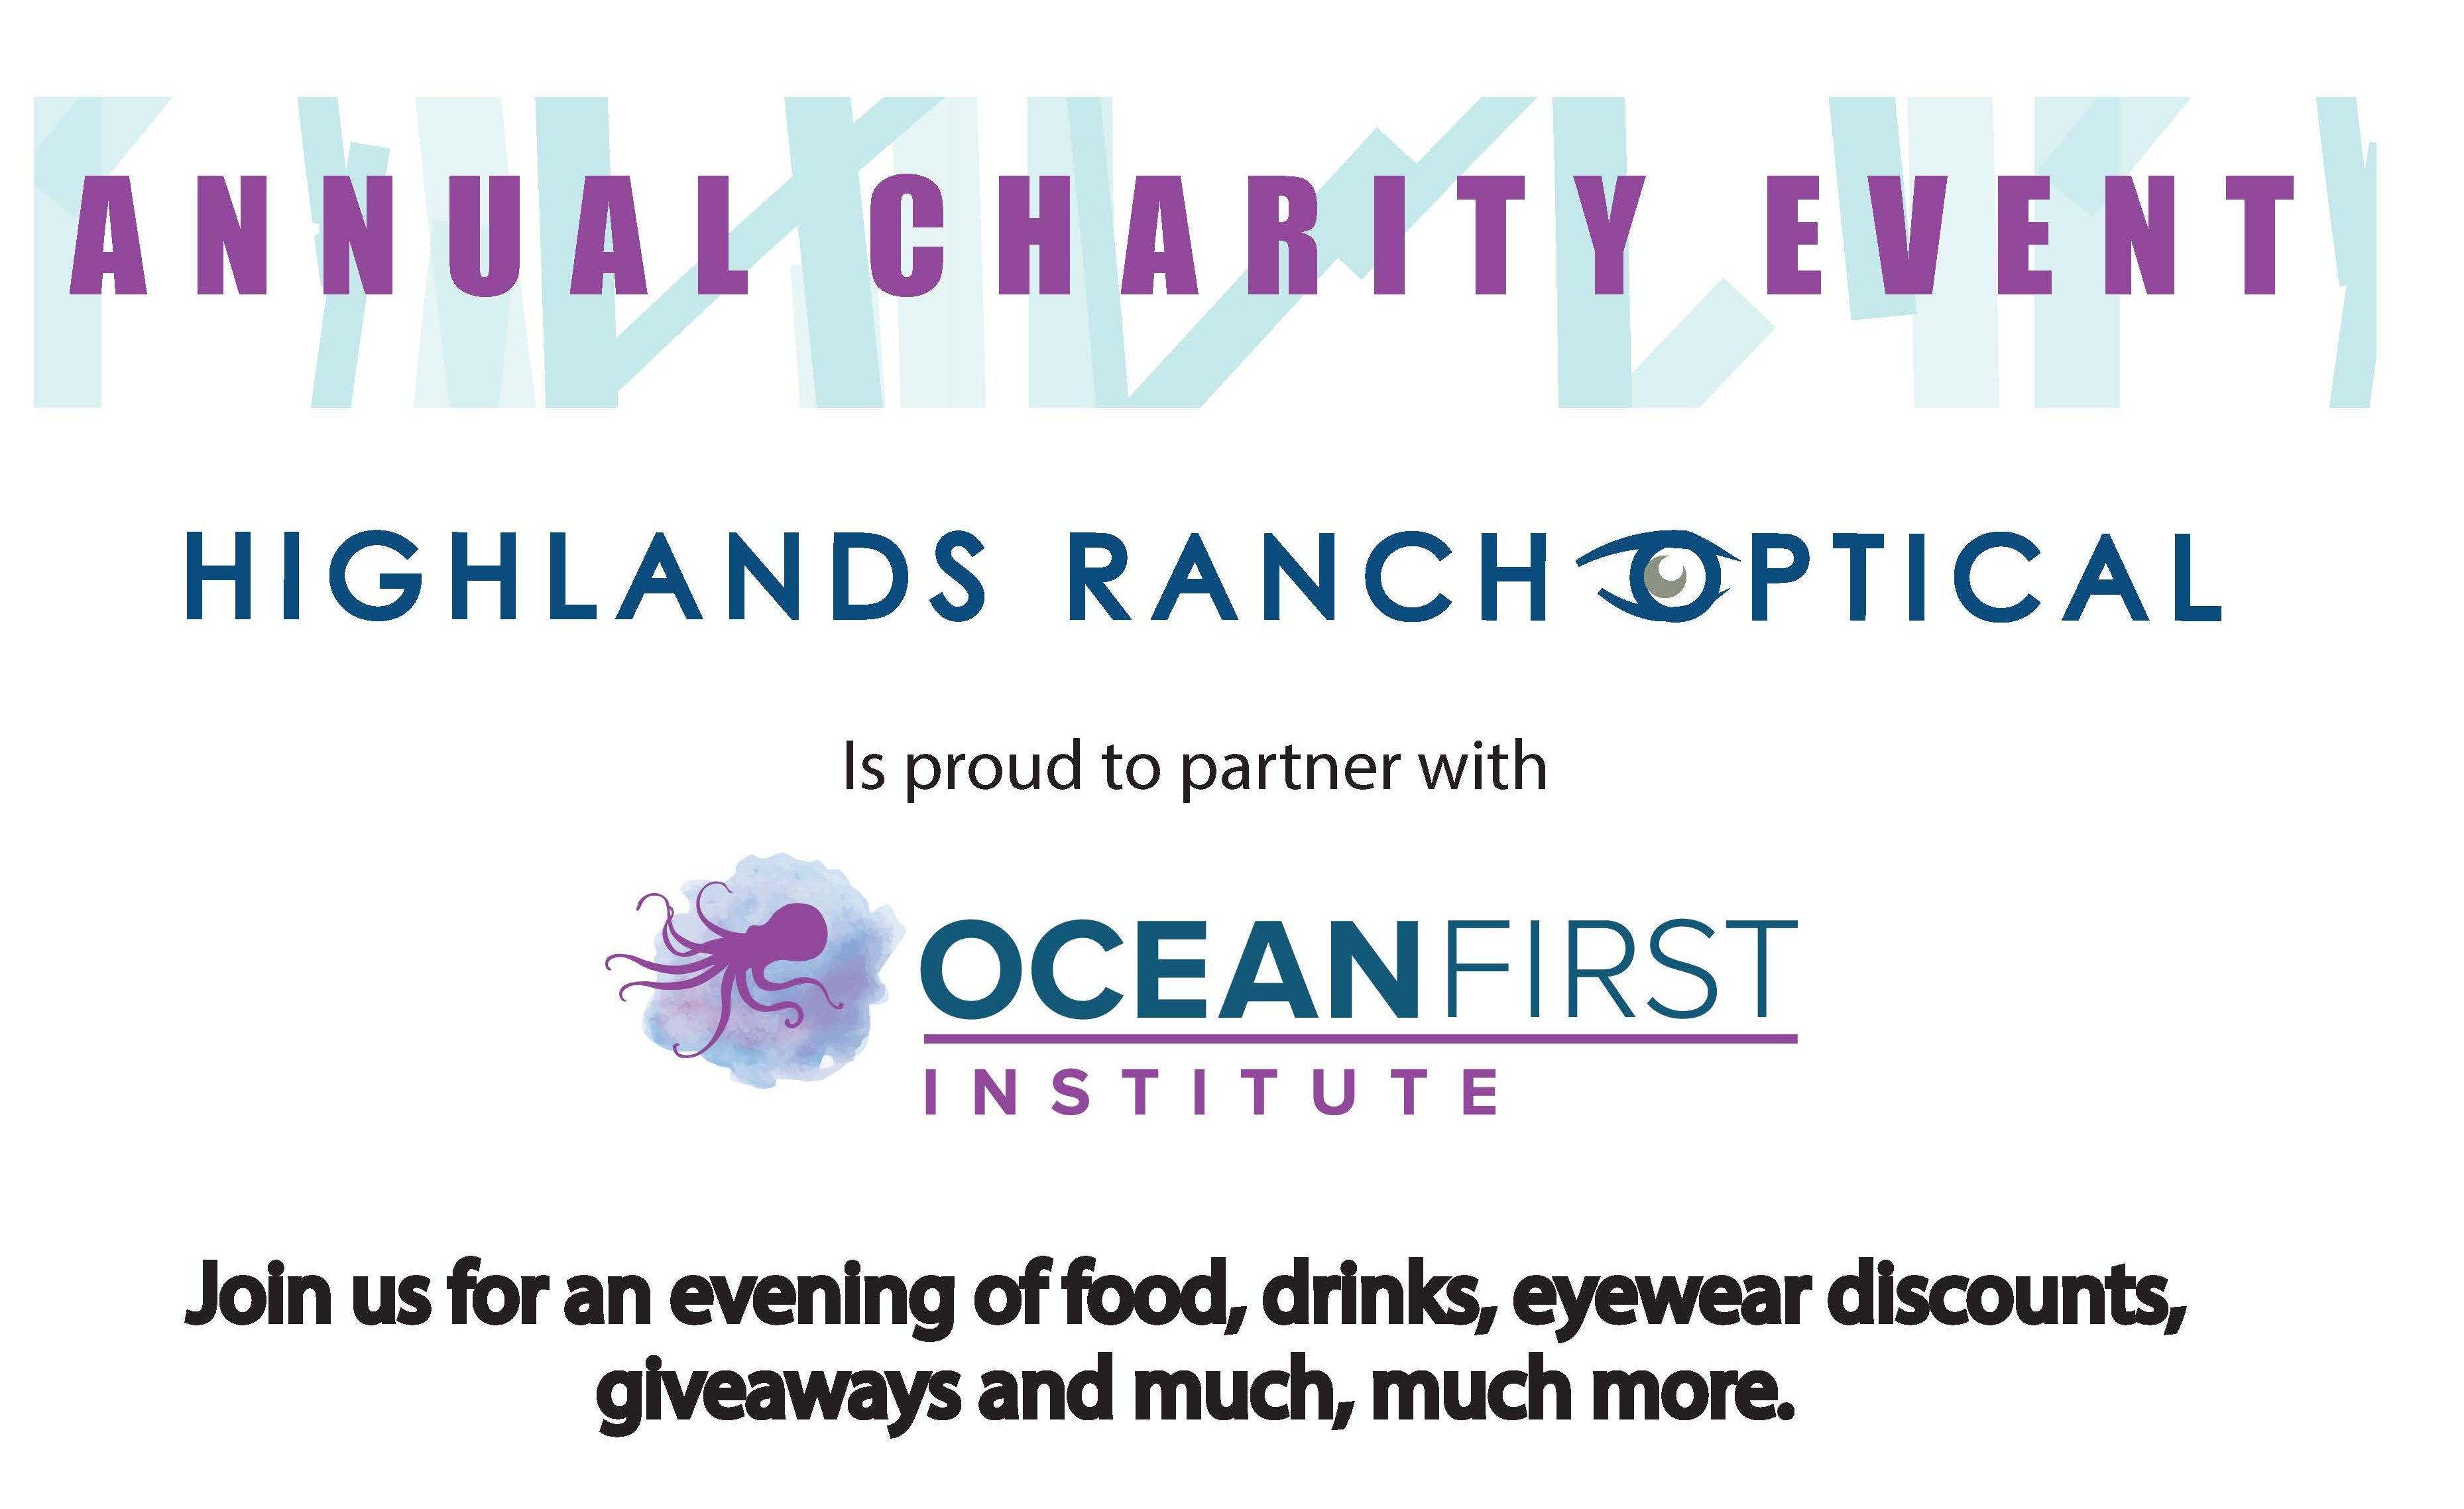 Highlands Ranch Optical Annual Charity Event